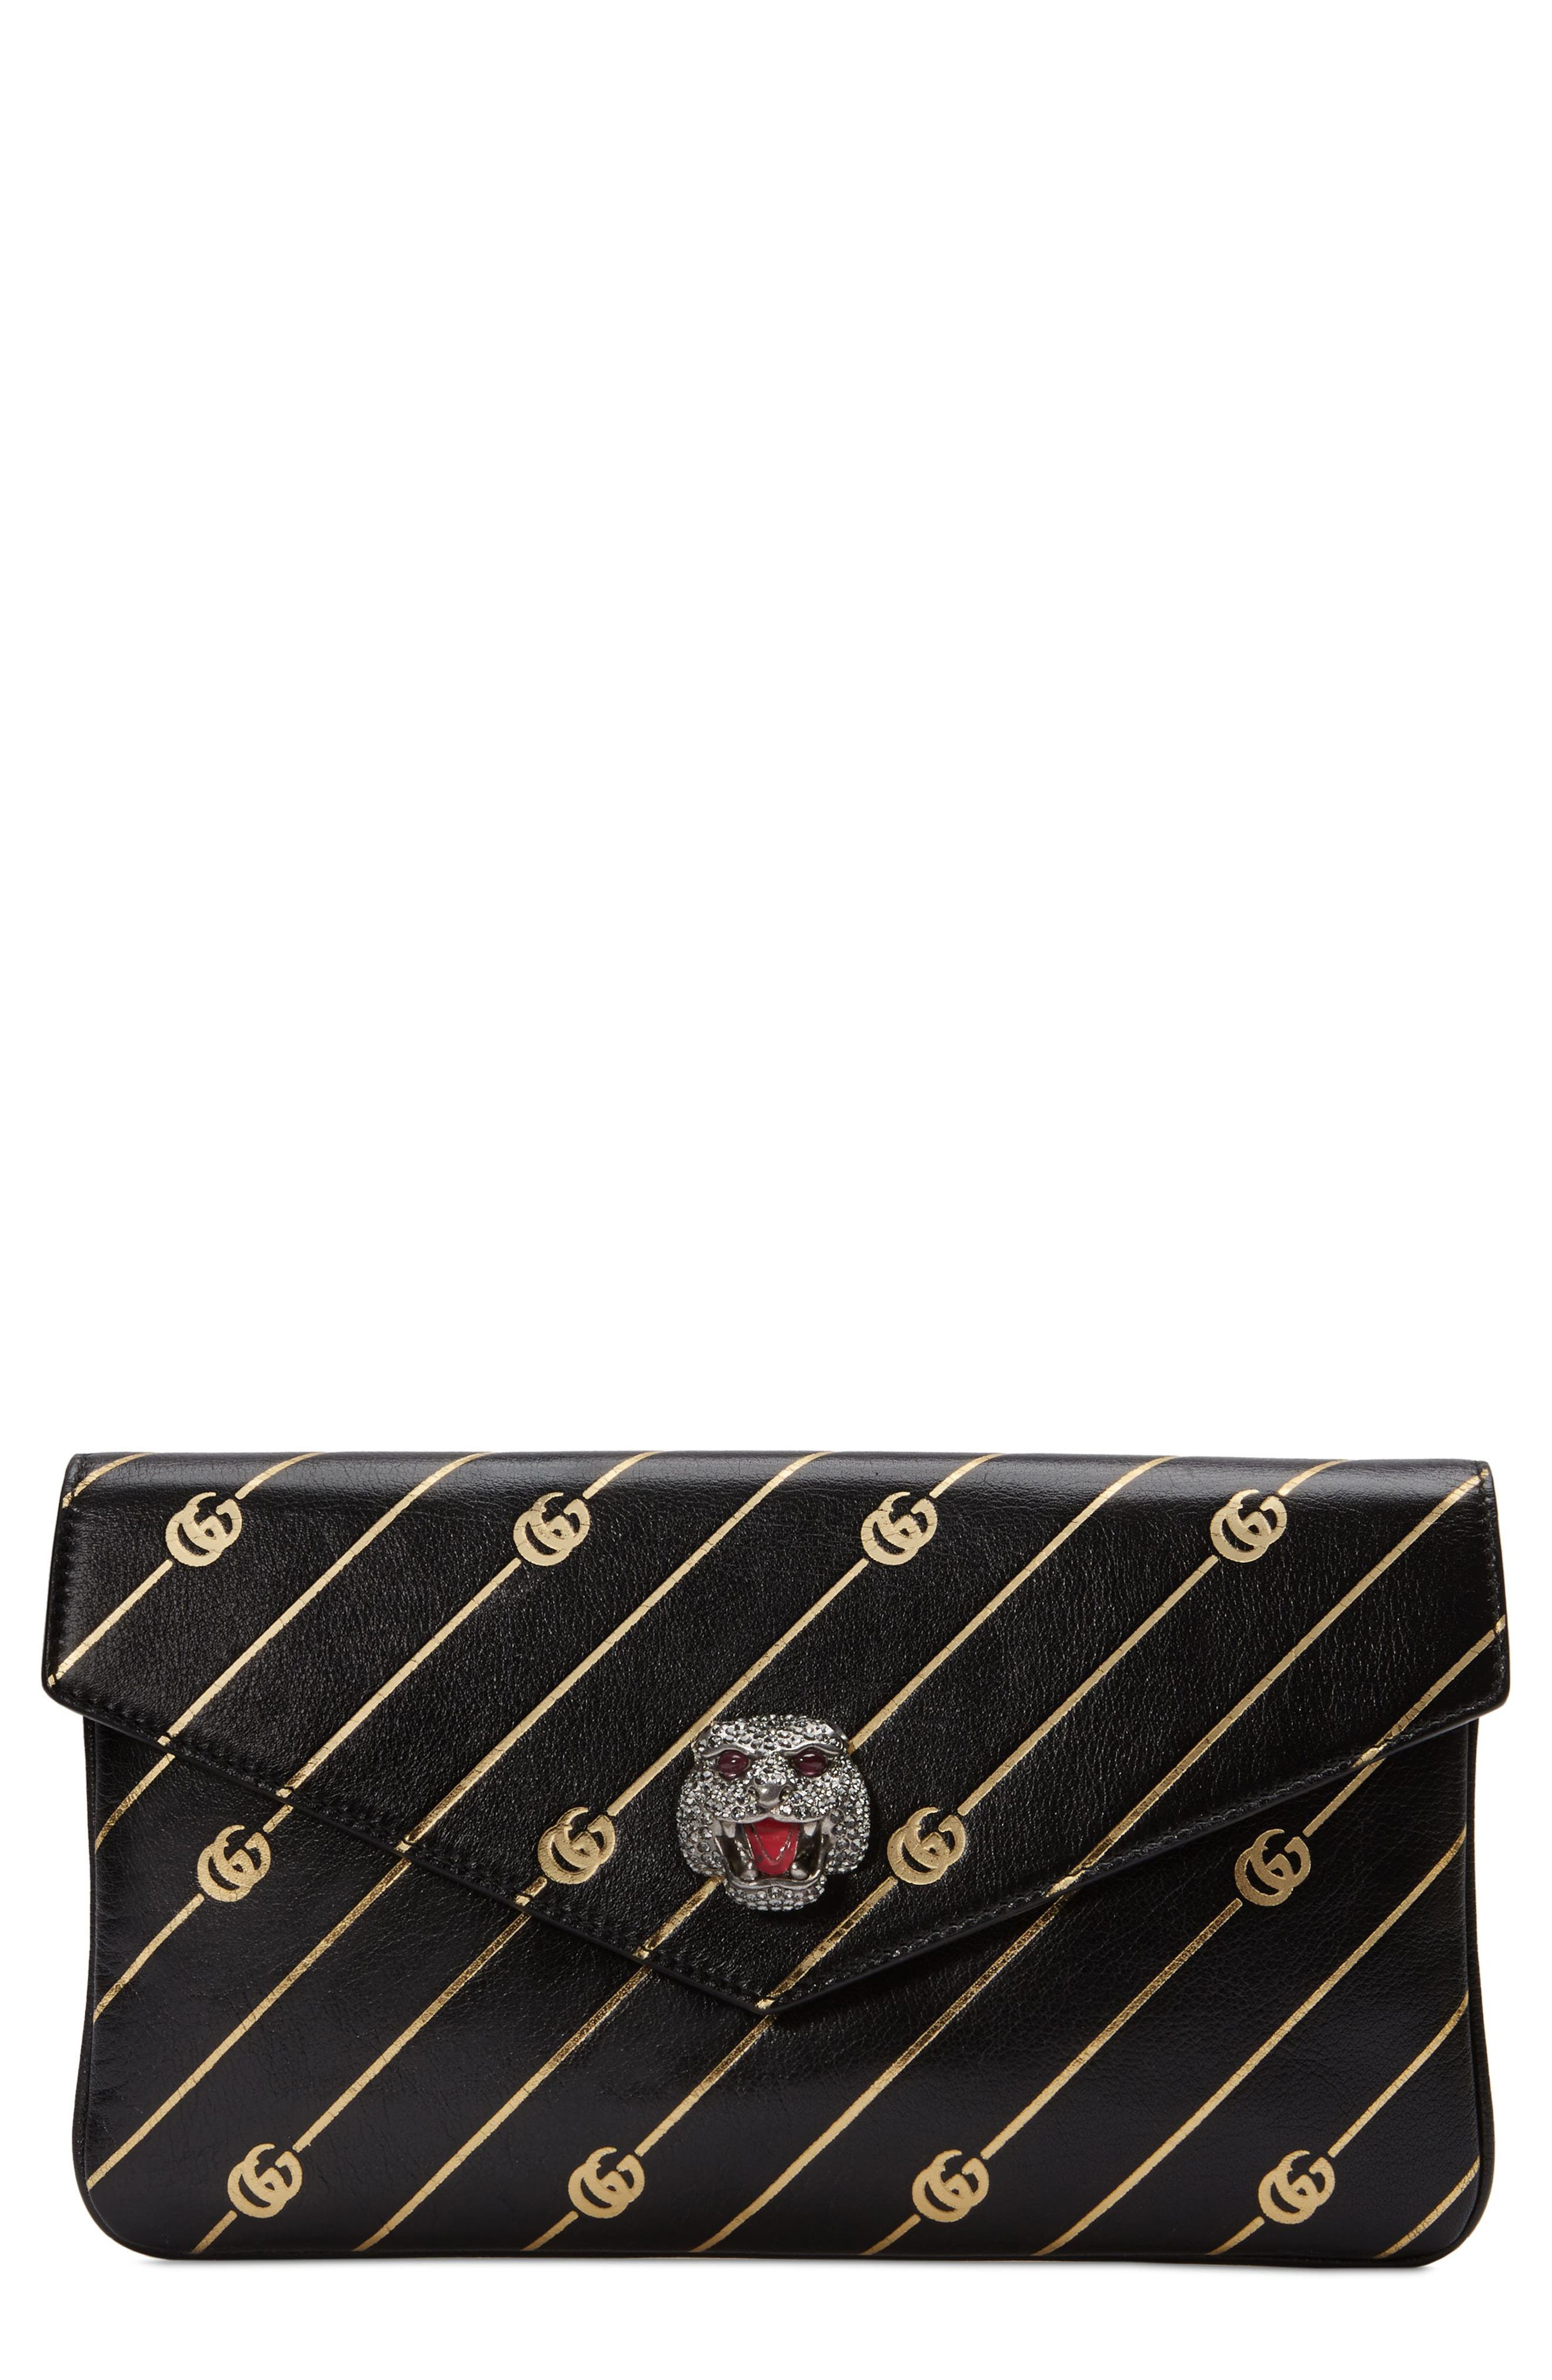 Gucci Broadway GG Archive-P Leather Envelope Clutch